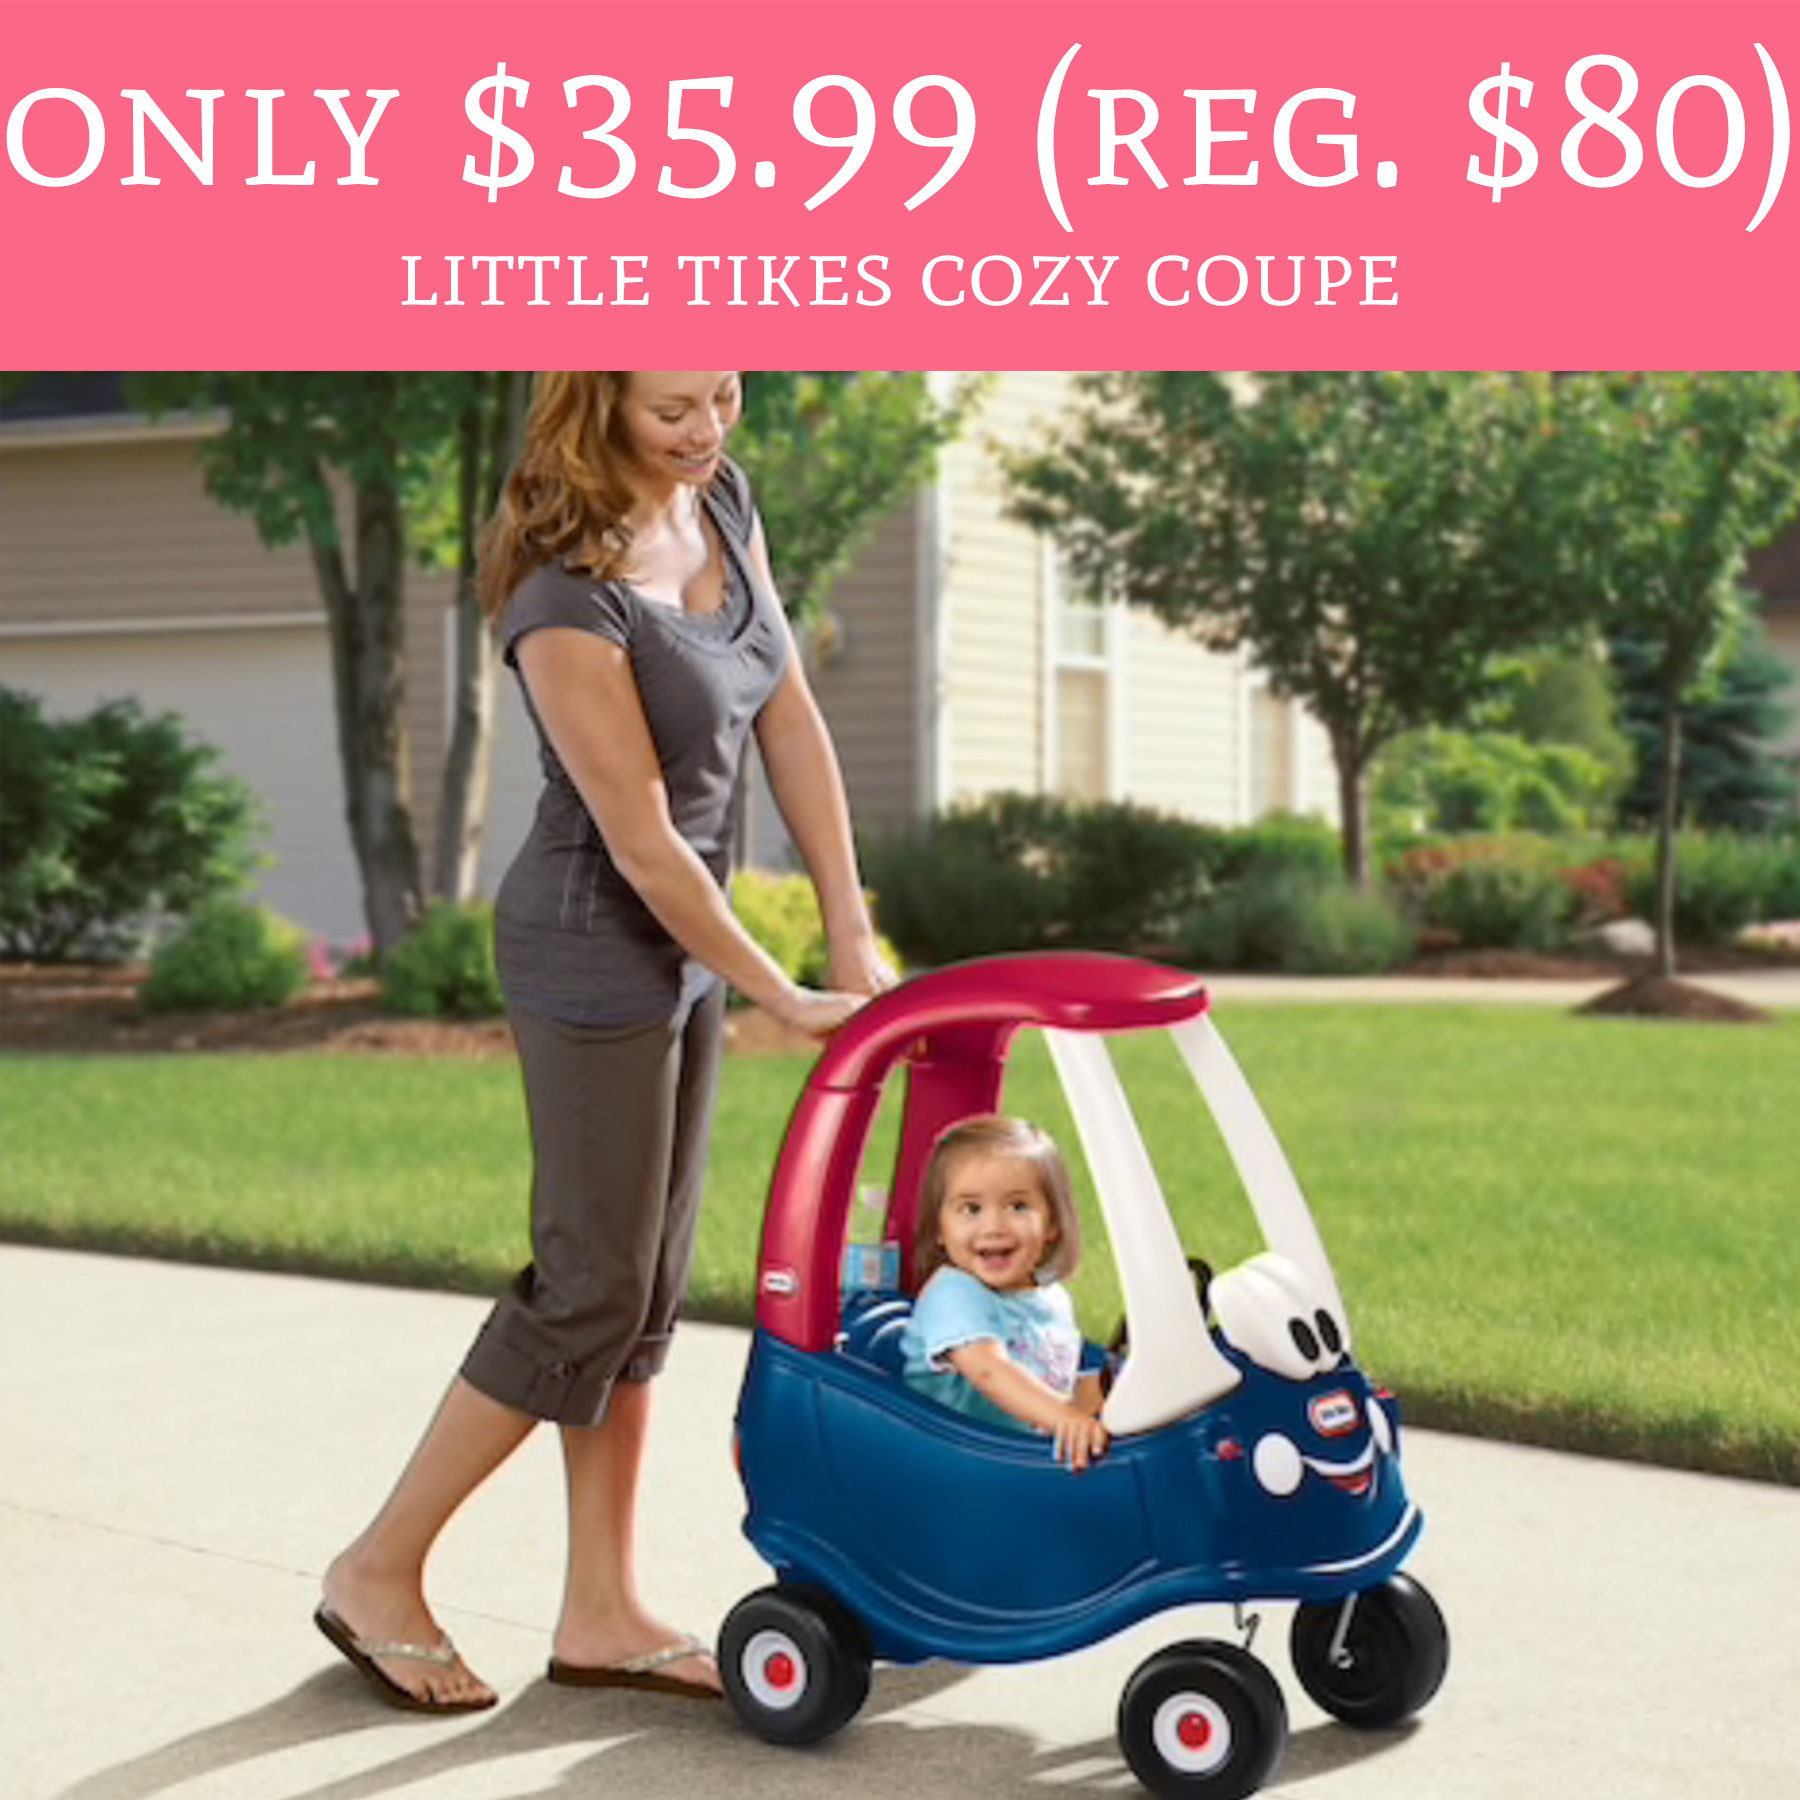 Hot only regular 80 little tikes cozy coupe - Little tikes cosy coupe car best price ...